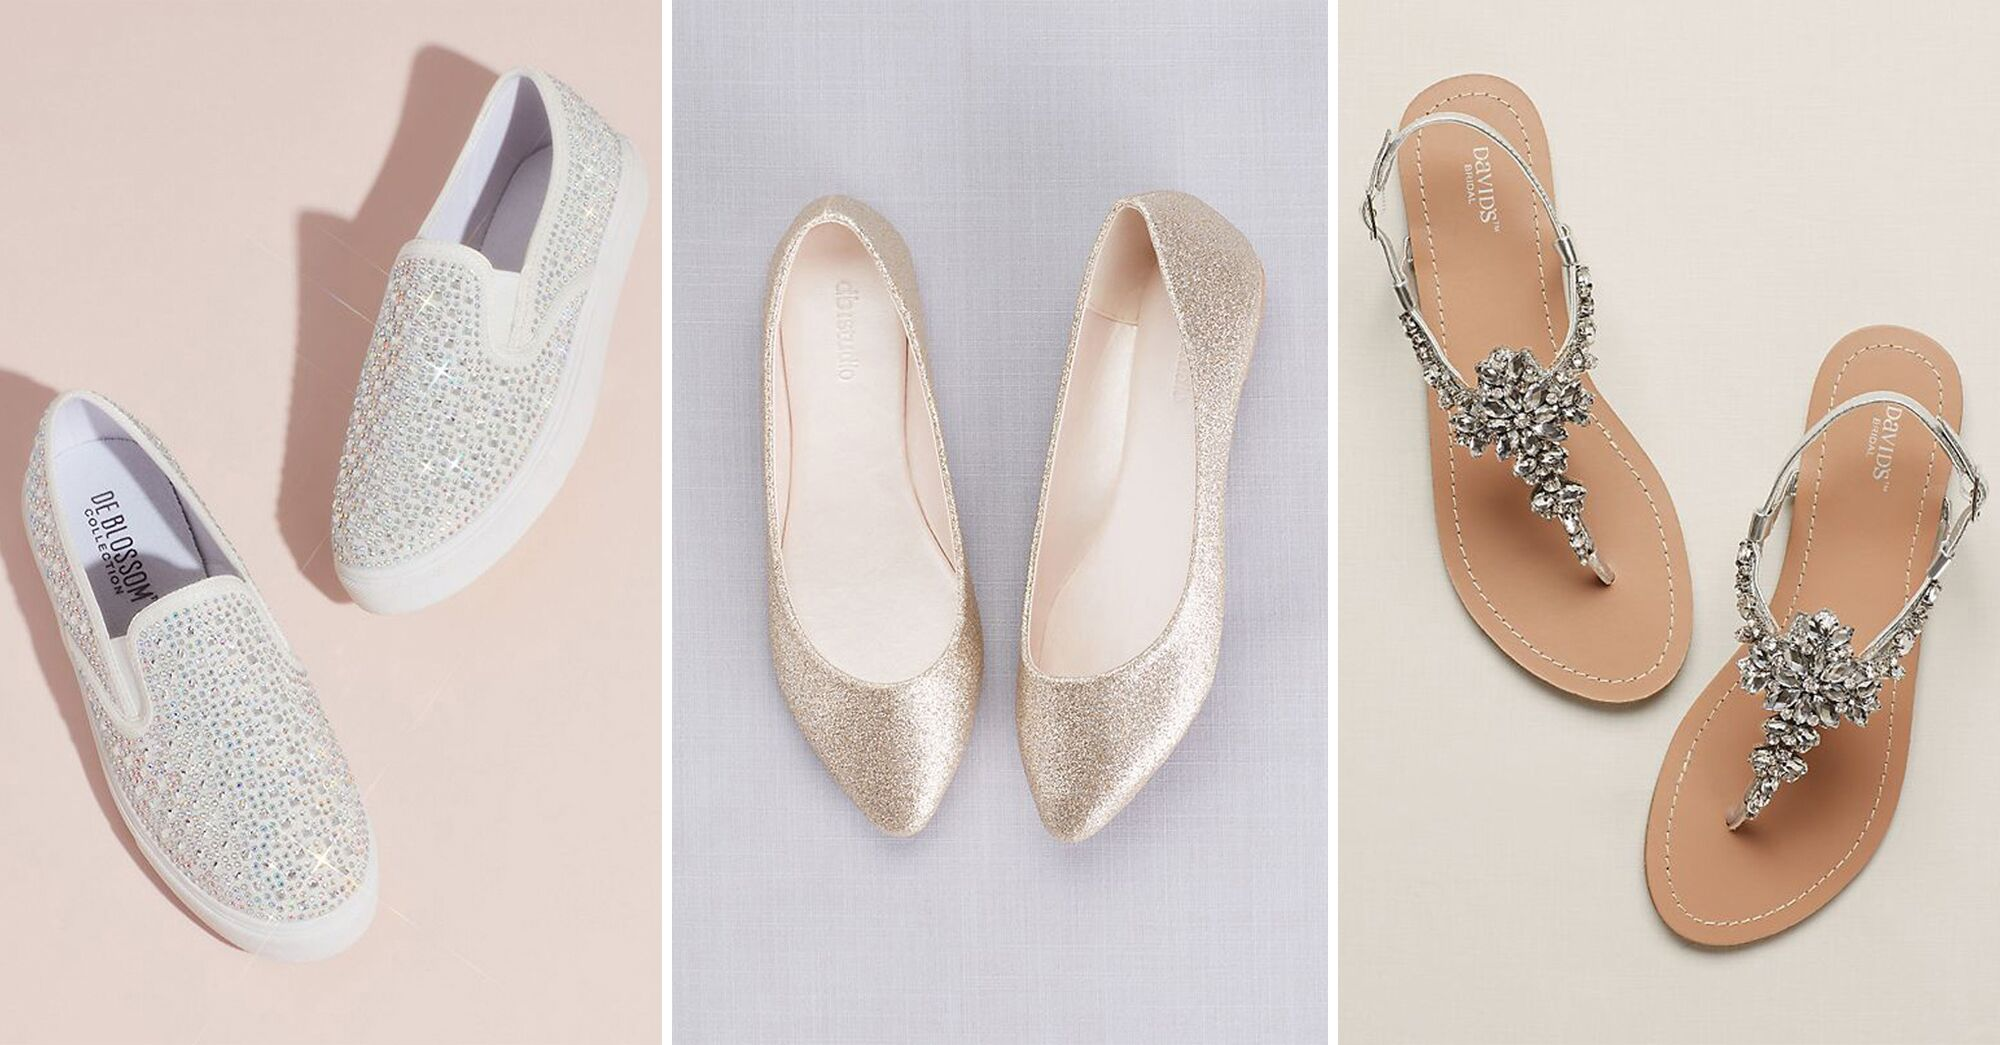 33 Sparkly Wedding Shoes To Glitter Down The Aisle In